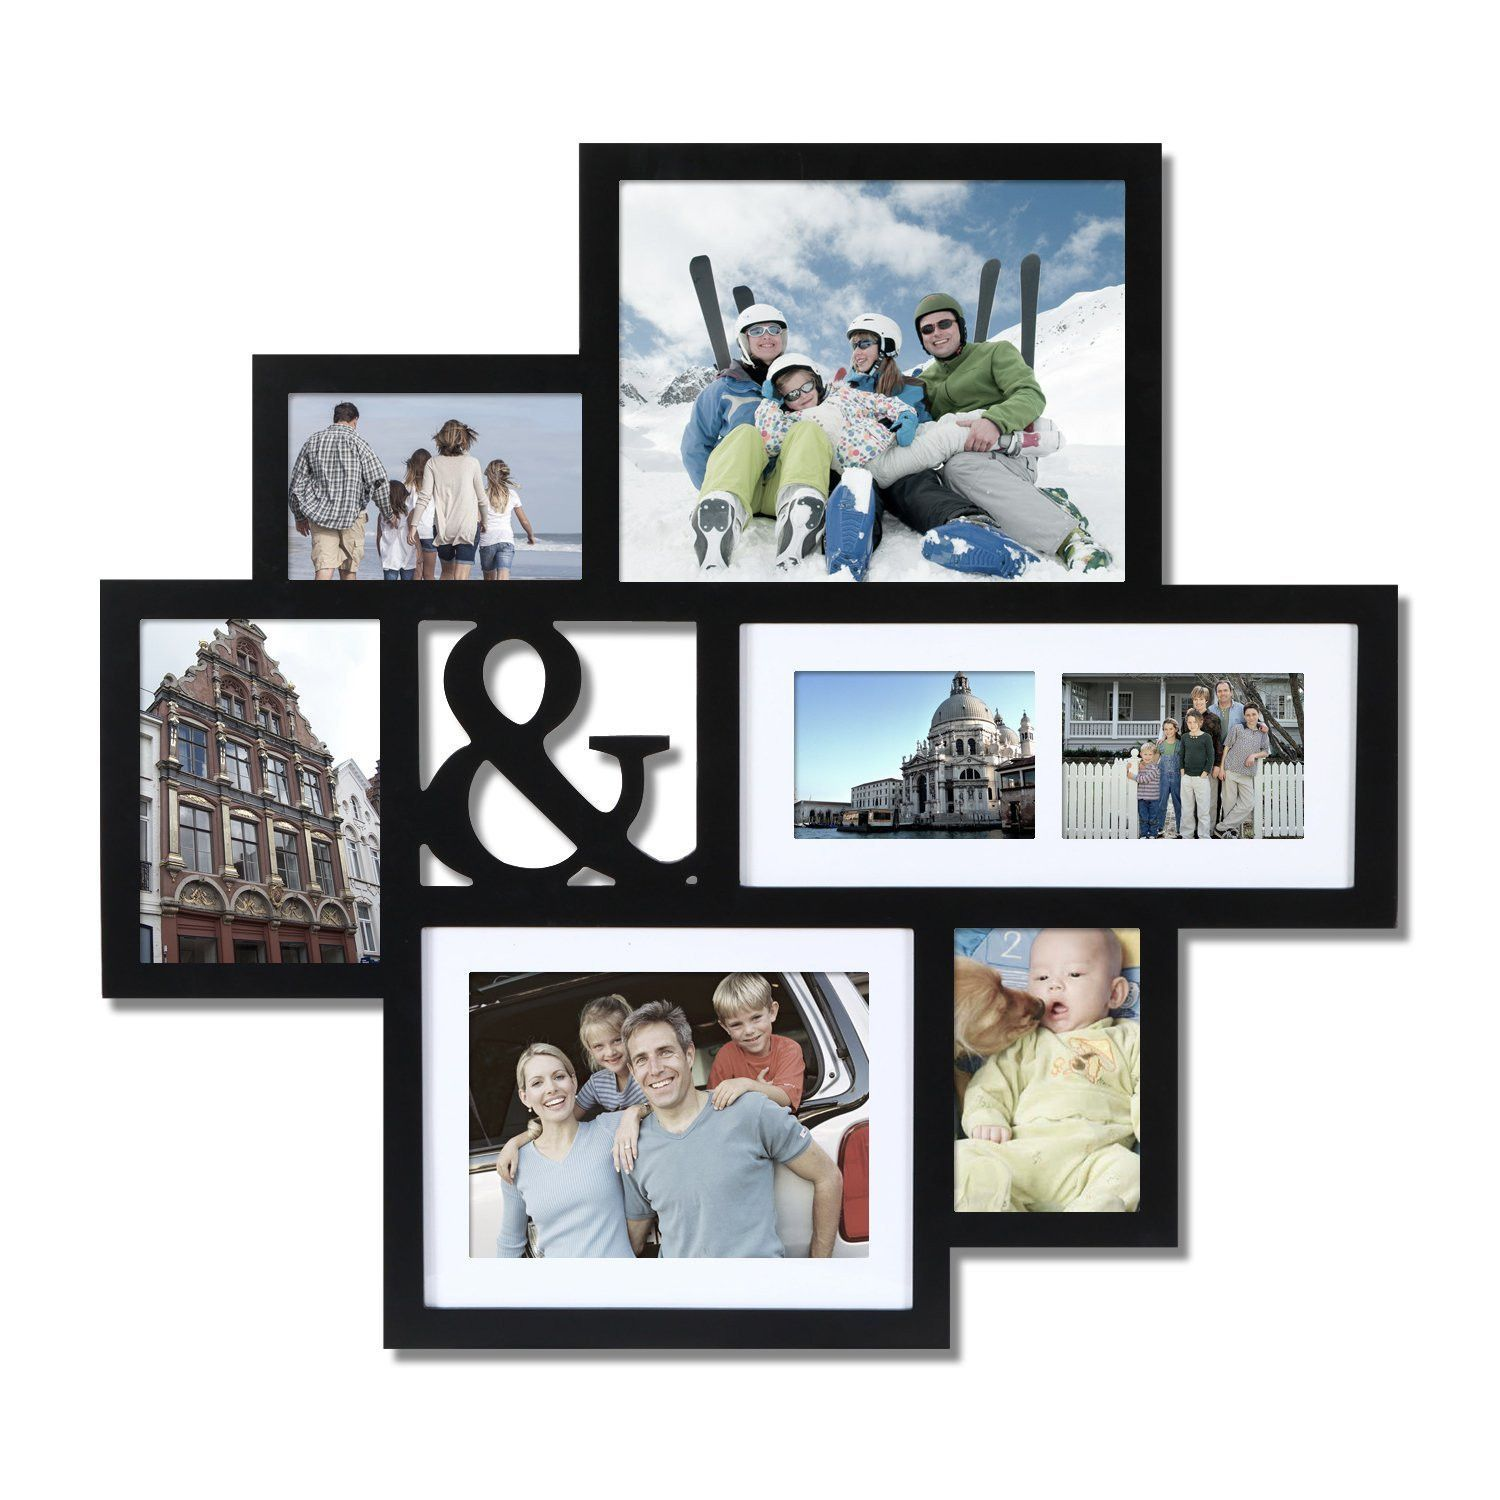 Black Wood Wall Hanging Picture Photo Frame Collage with Ampersand ...